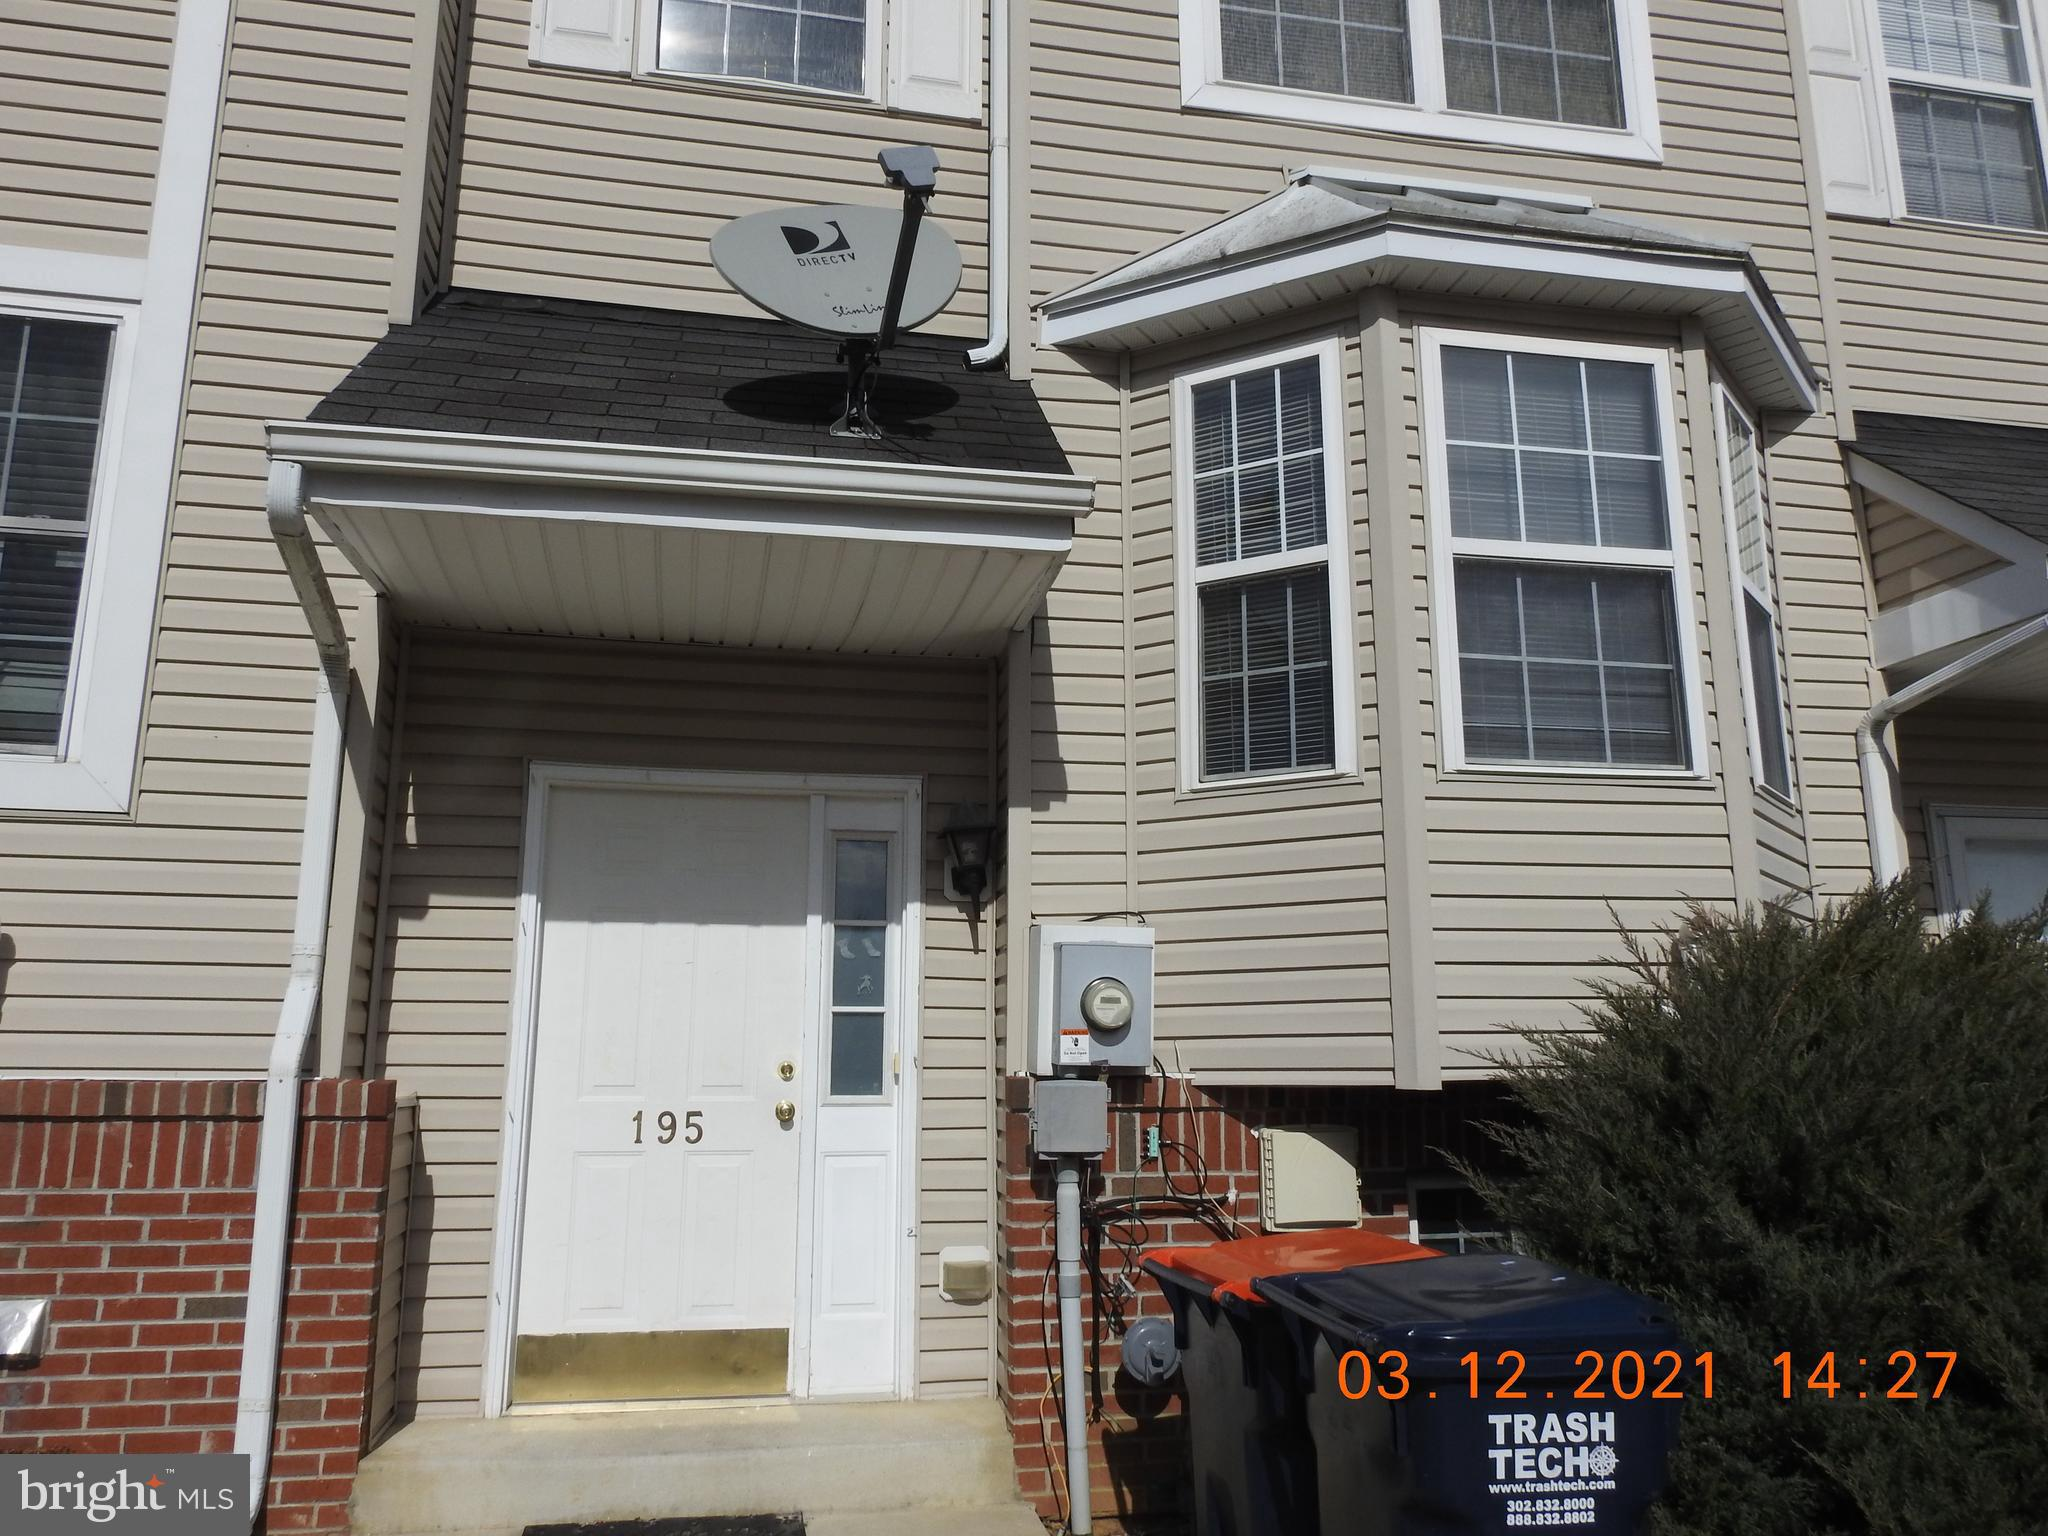 Beautiful 3 Bedroom townhome now available in the community of Tartan Court. Great location right off of 299 and close to major shopping and restaurants. Easy access to public transportation nearby. The townhome is near the back of neighborhood. This town house features a split-level entry. The basement has an outside walkout and there is a deck off of the main floor. The master bedroom has a vaulted ceiling and master bath. The air condition and hot-water heater were changed less than 3 years ago.